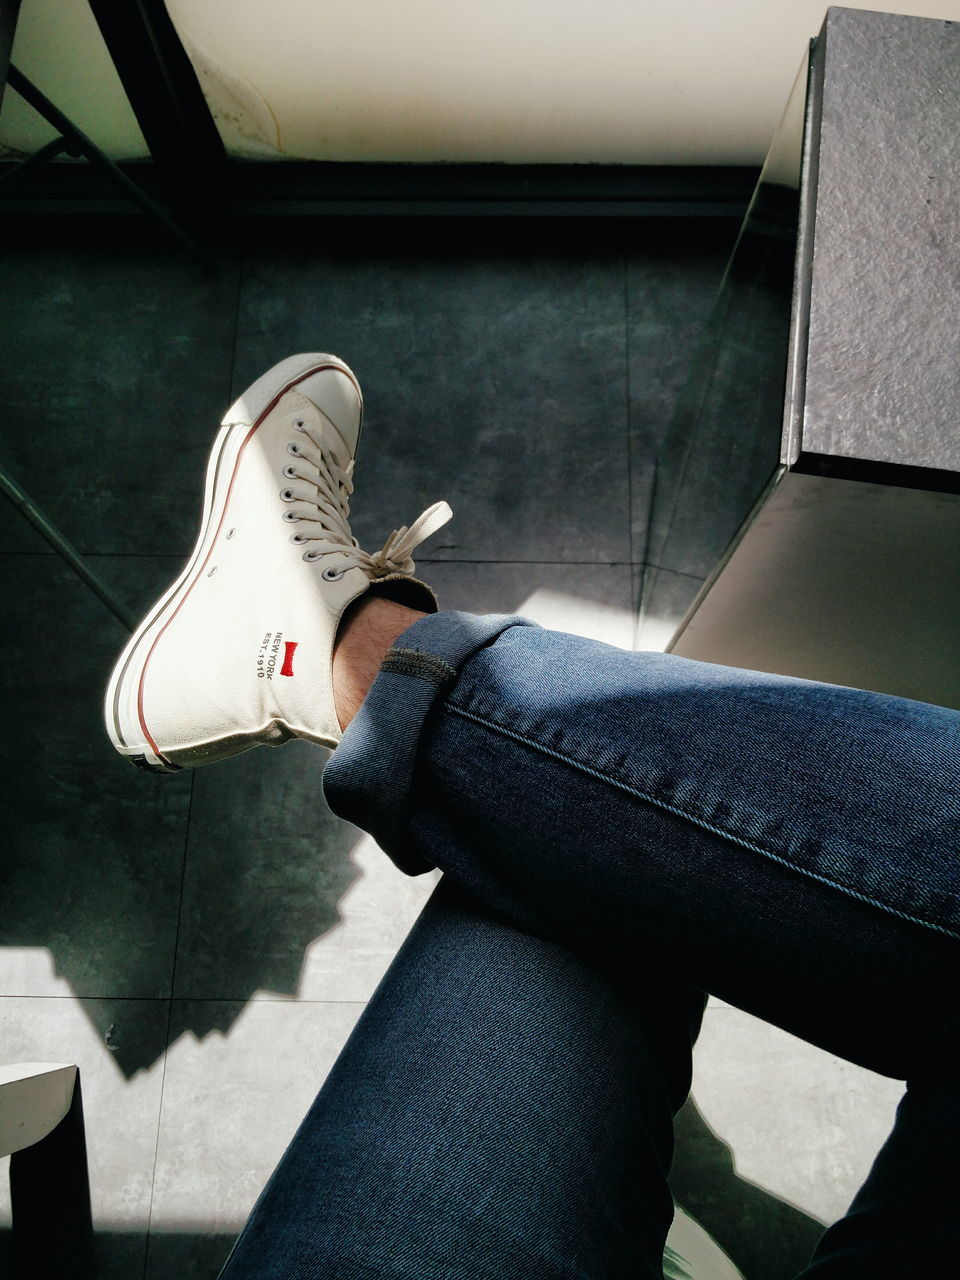 low section, human leg, real people, one person, jeans, shoe, indoors, casual clothing, human body part, leisure activity, lifestyles, day, women, men, sitting, standing, close-up, human hand, people